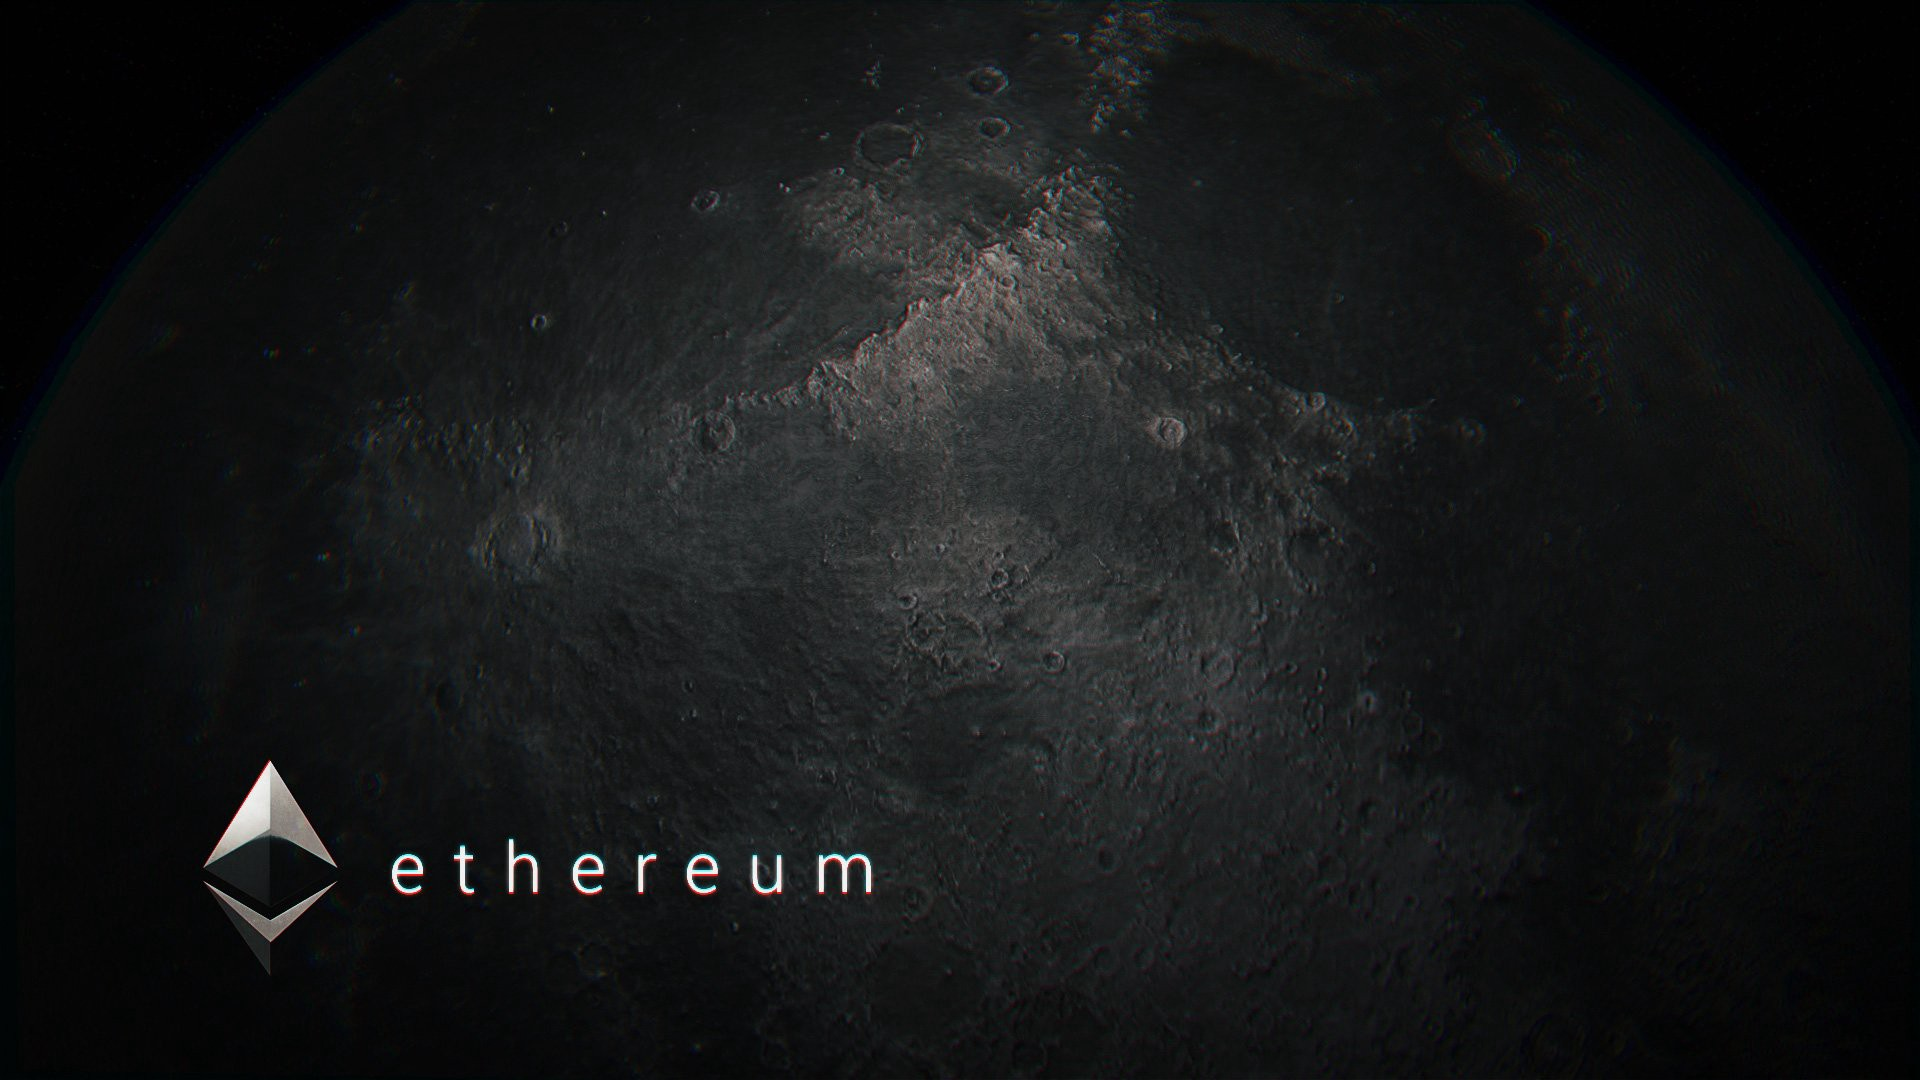 /what-ethereum-means-to-me-a4be57fcb7d9 feature image